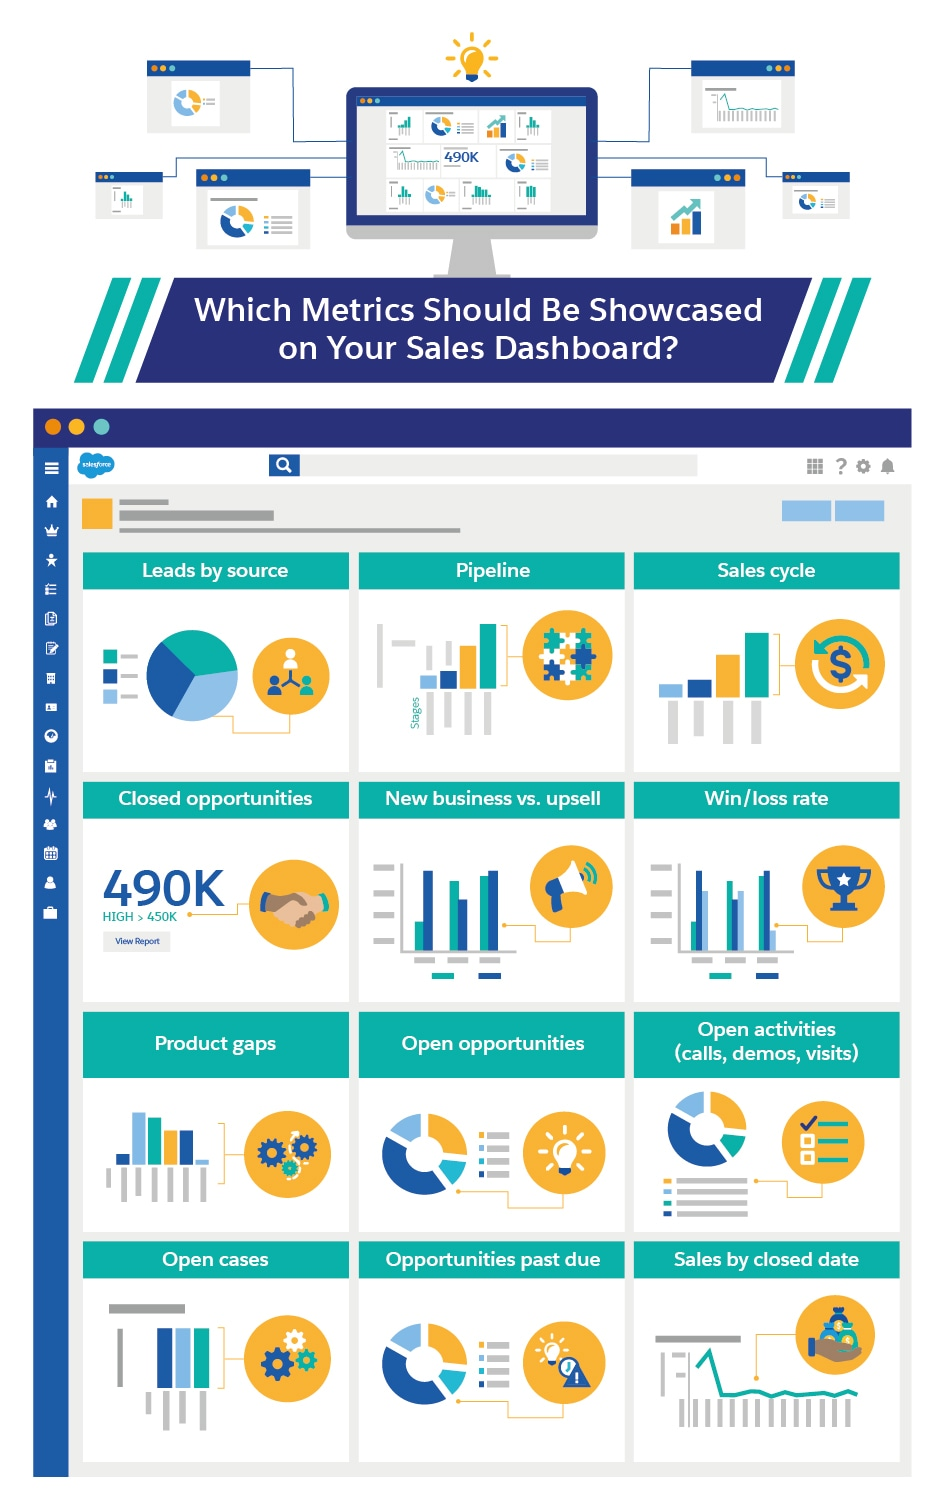 Which Metrics Should Be Showcased on Your Sales Dashboard